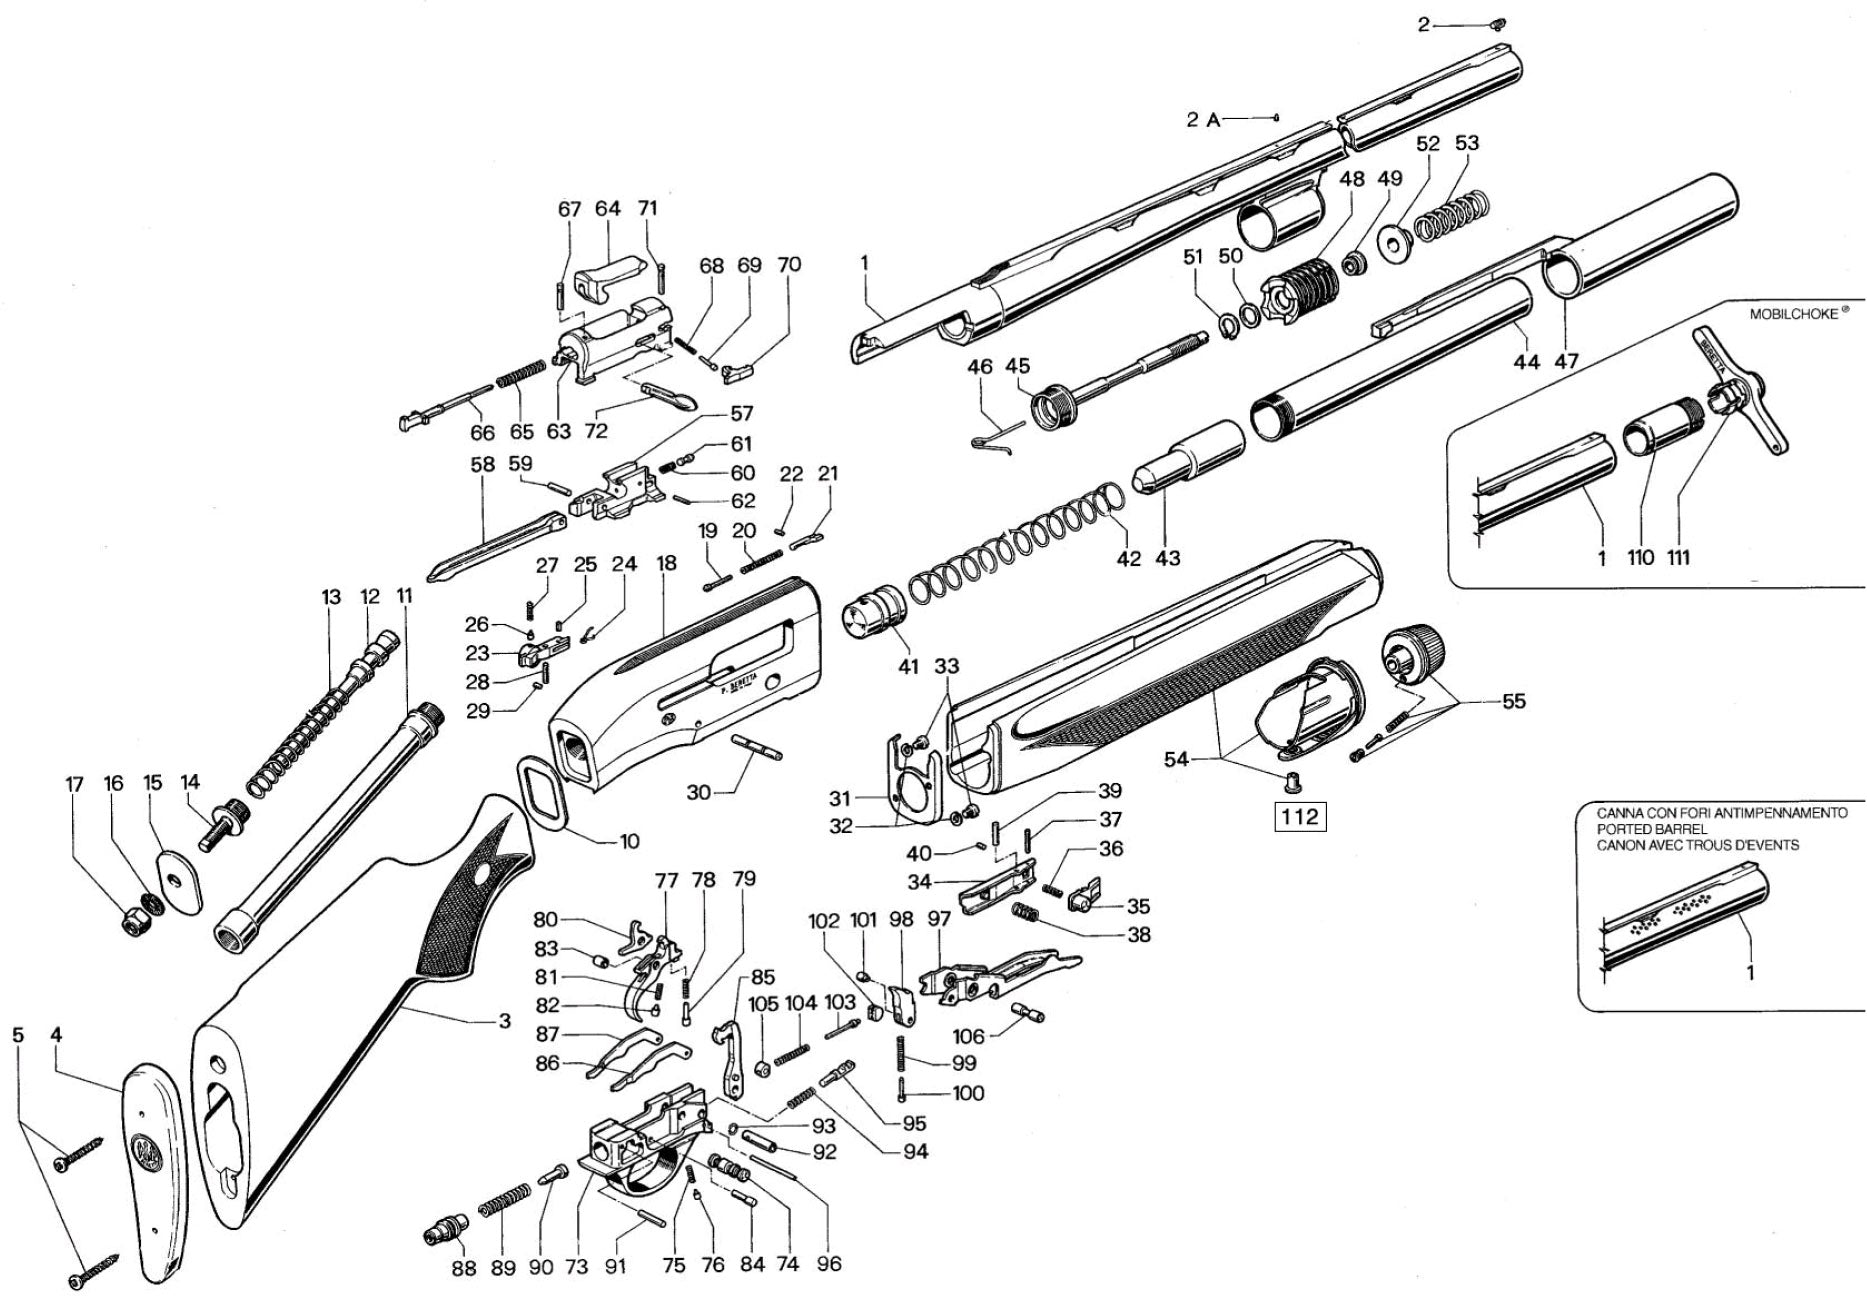 Remington 870 Receiver Exploded Diagram Manual Guide Wiring Parts Winchester Shotgun Get Free Image About